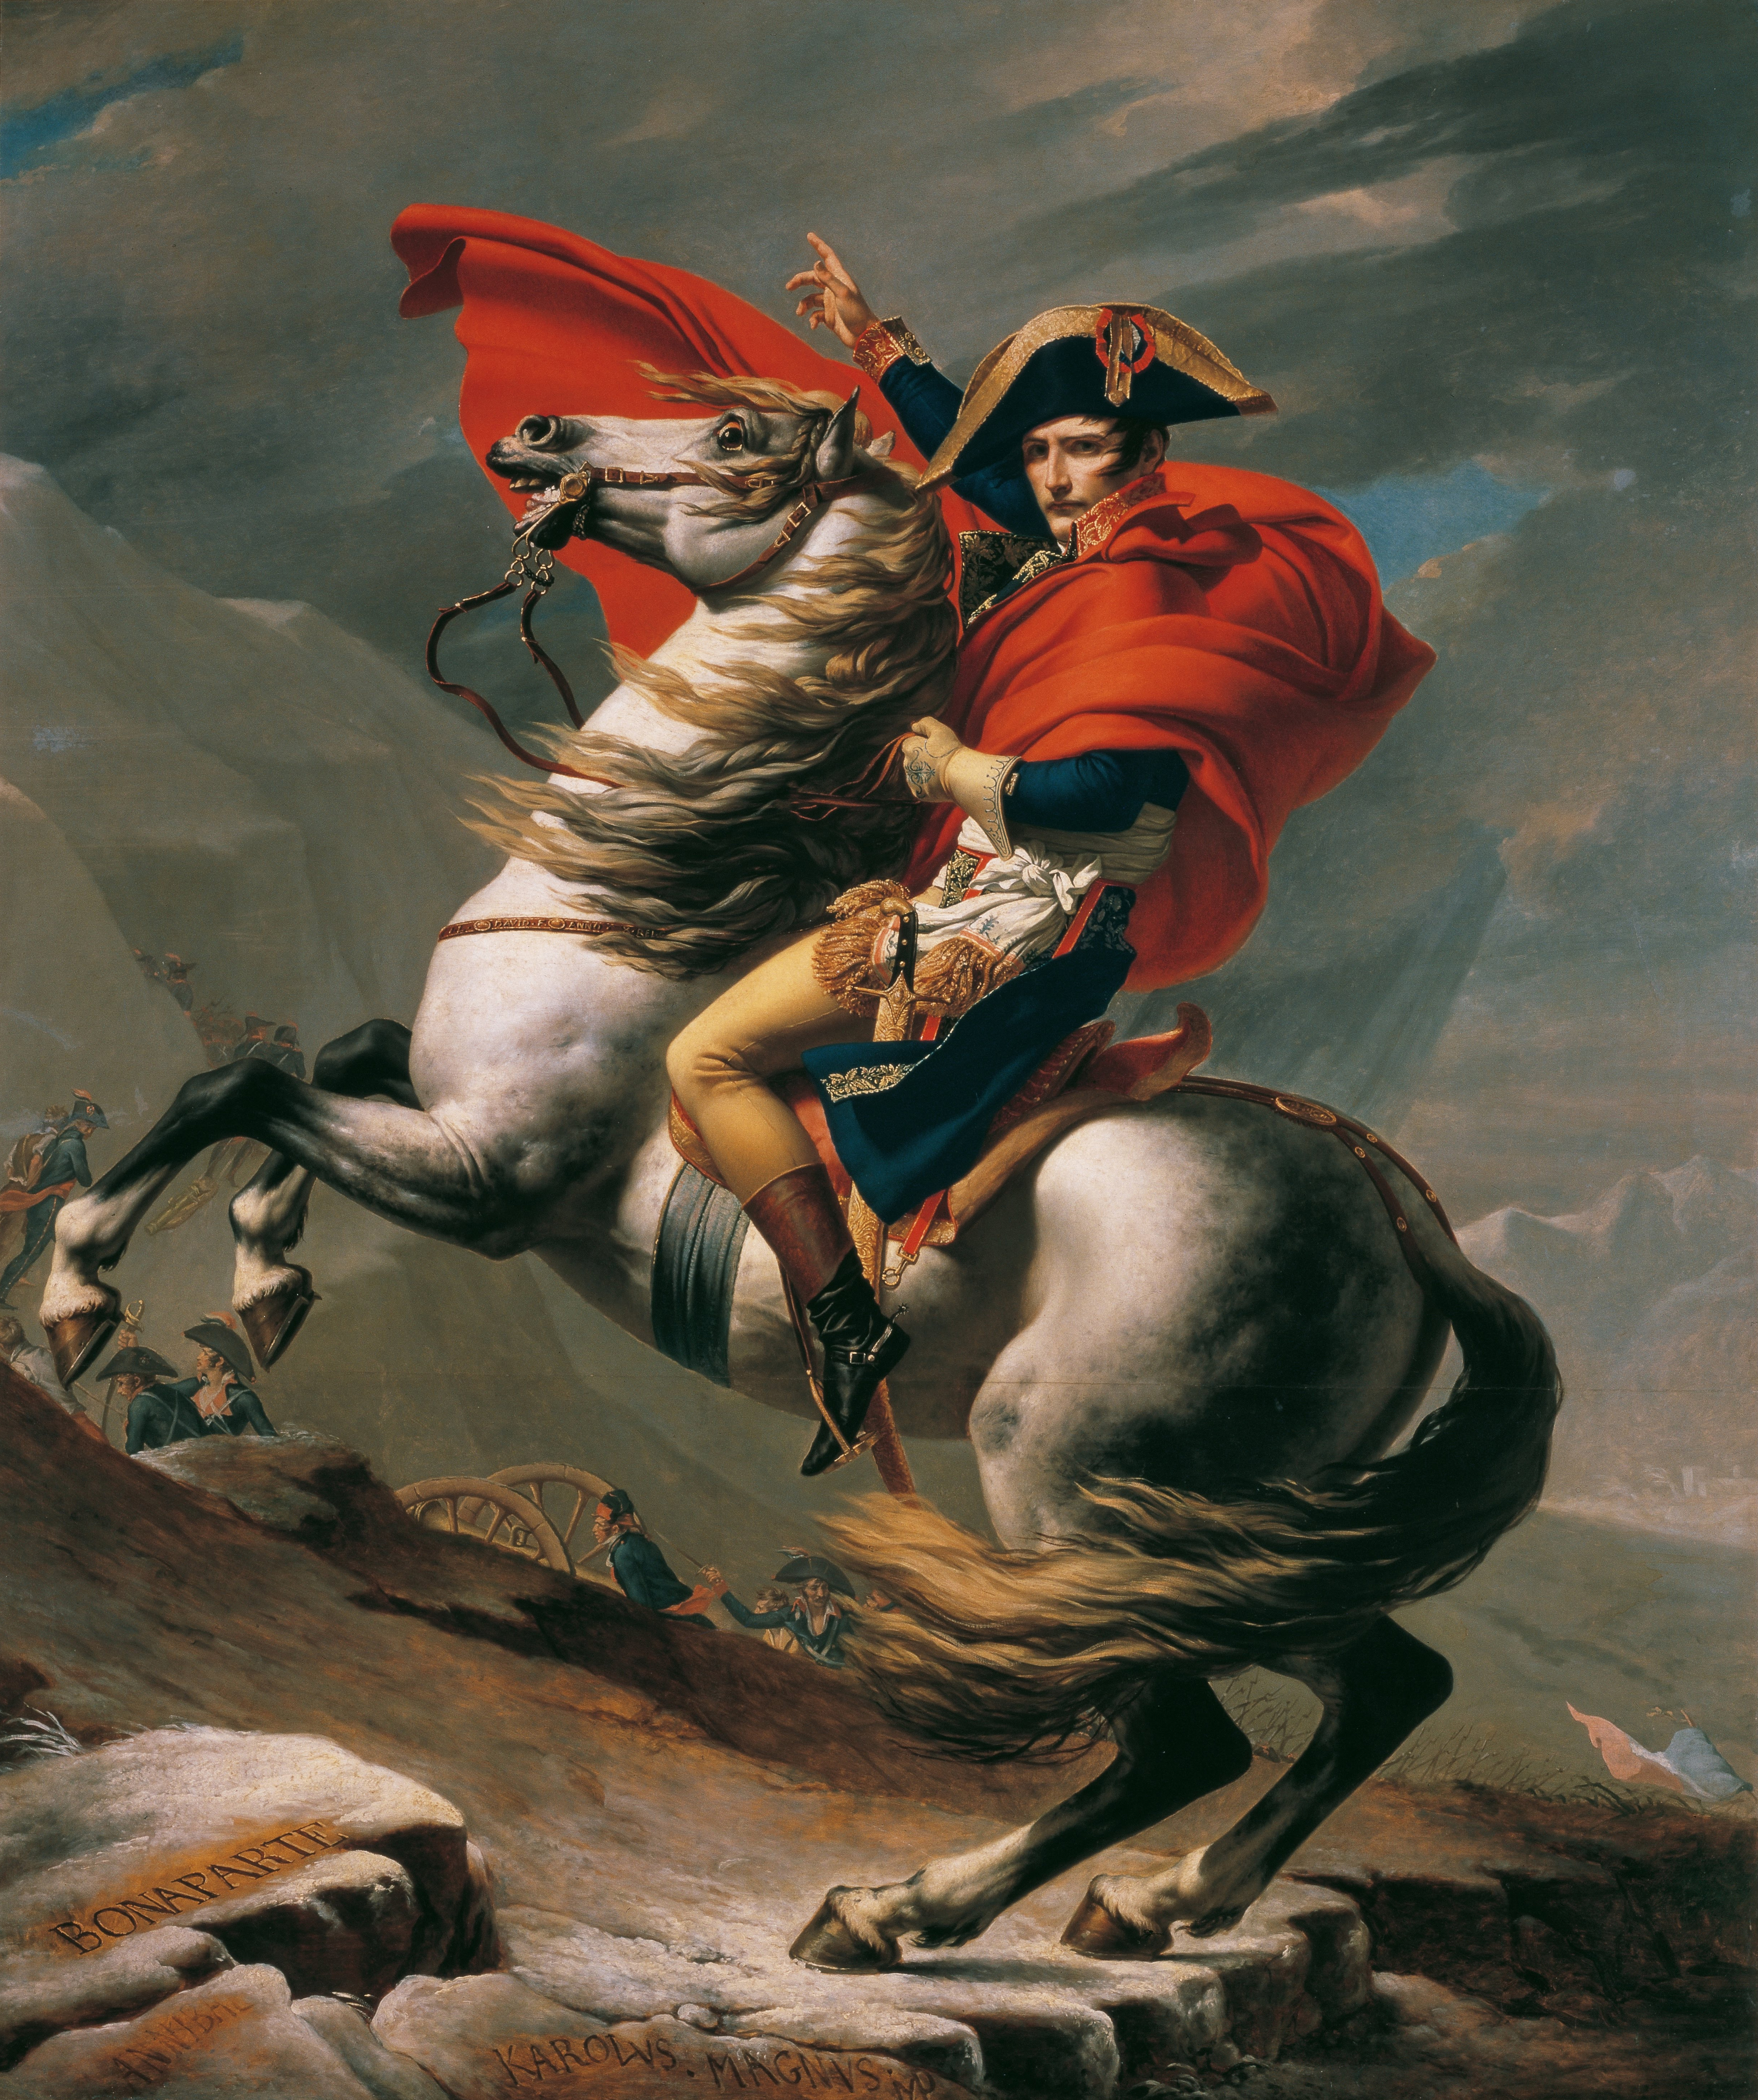 Napoleon di Great St. Bernard - Jacques-Louis David